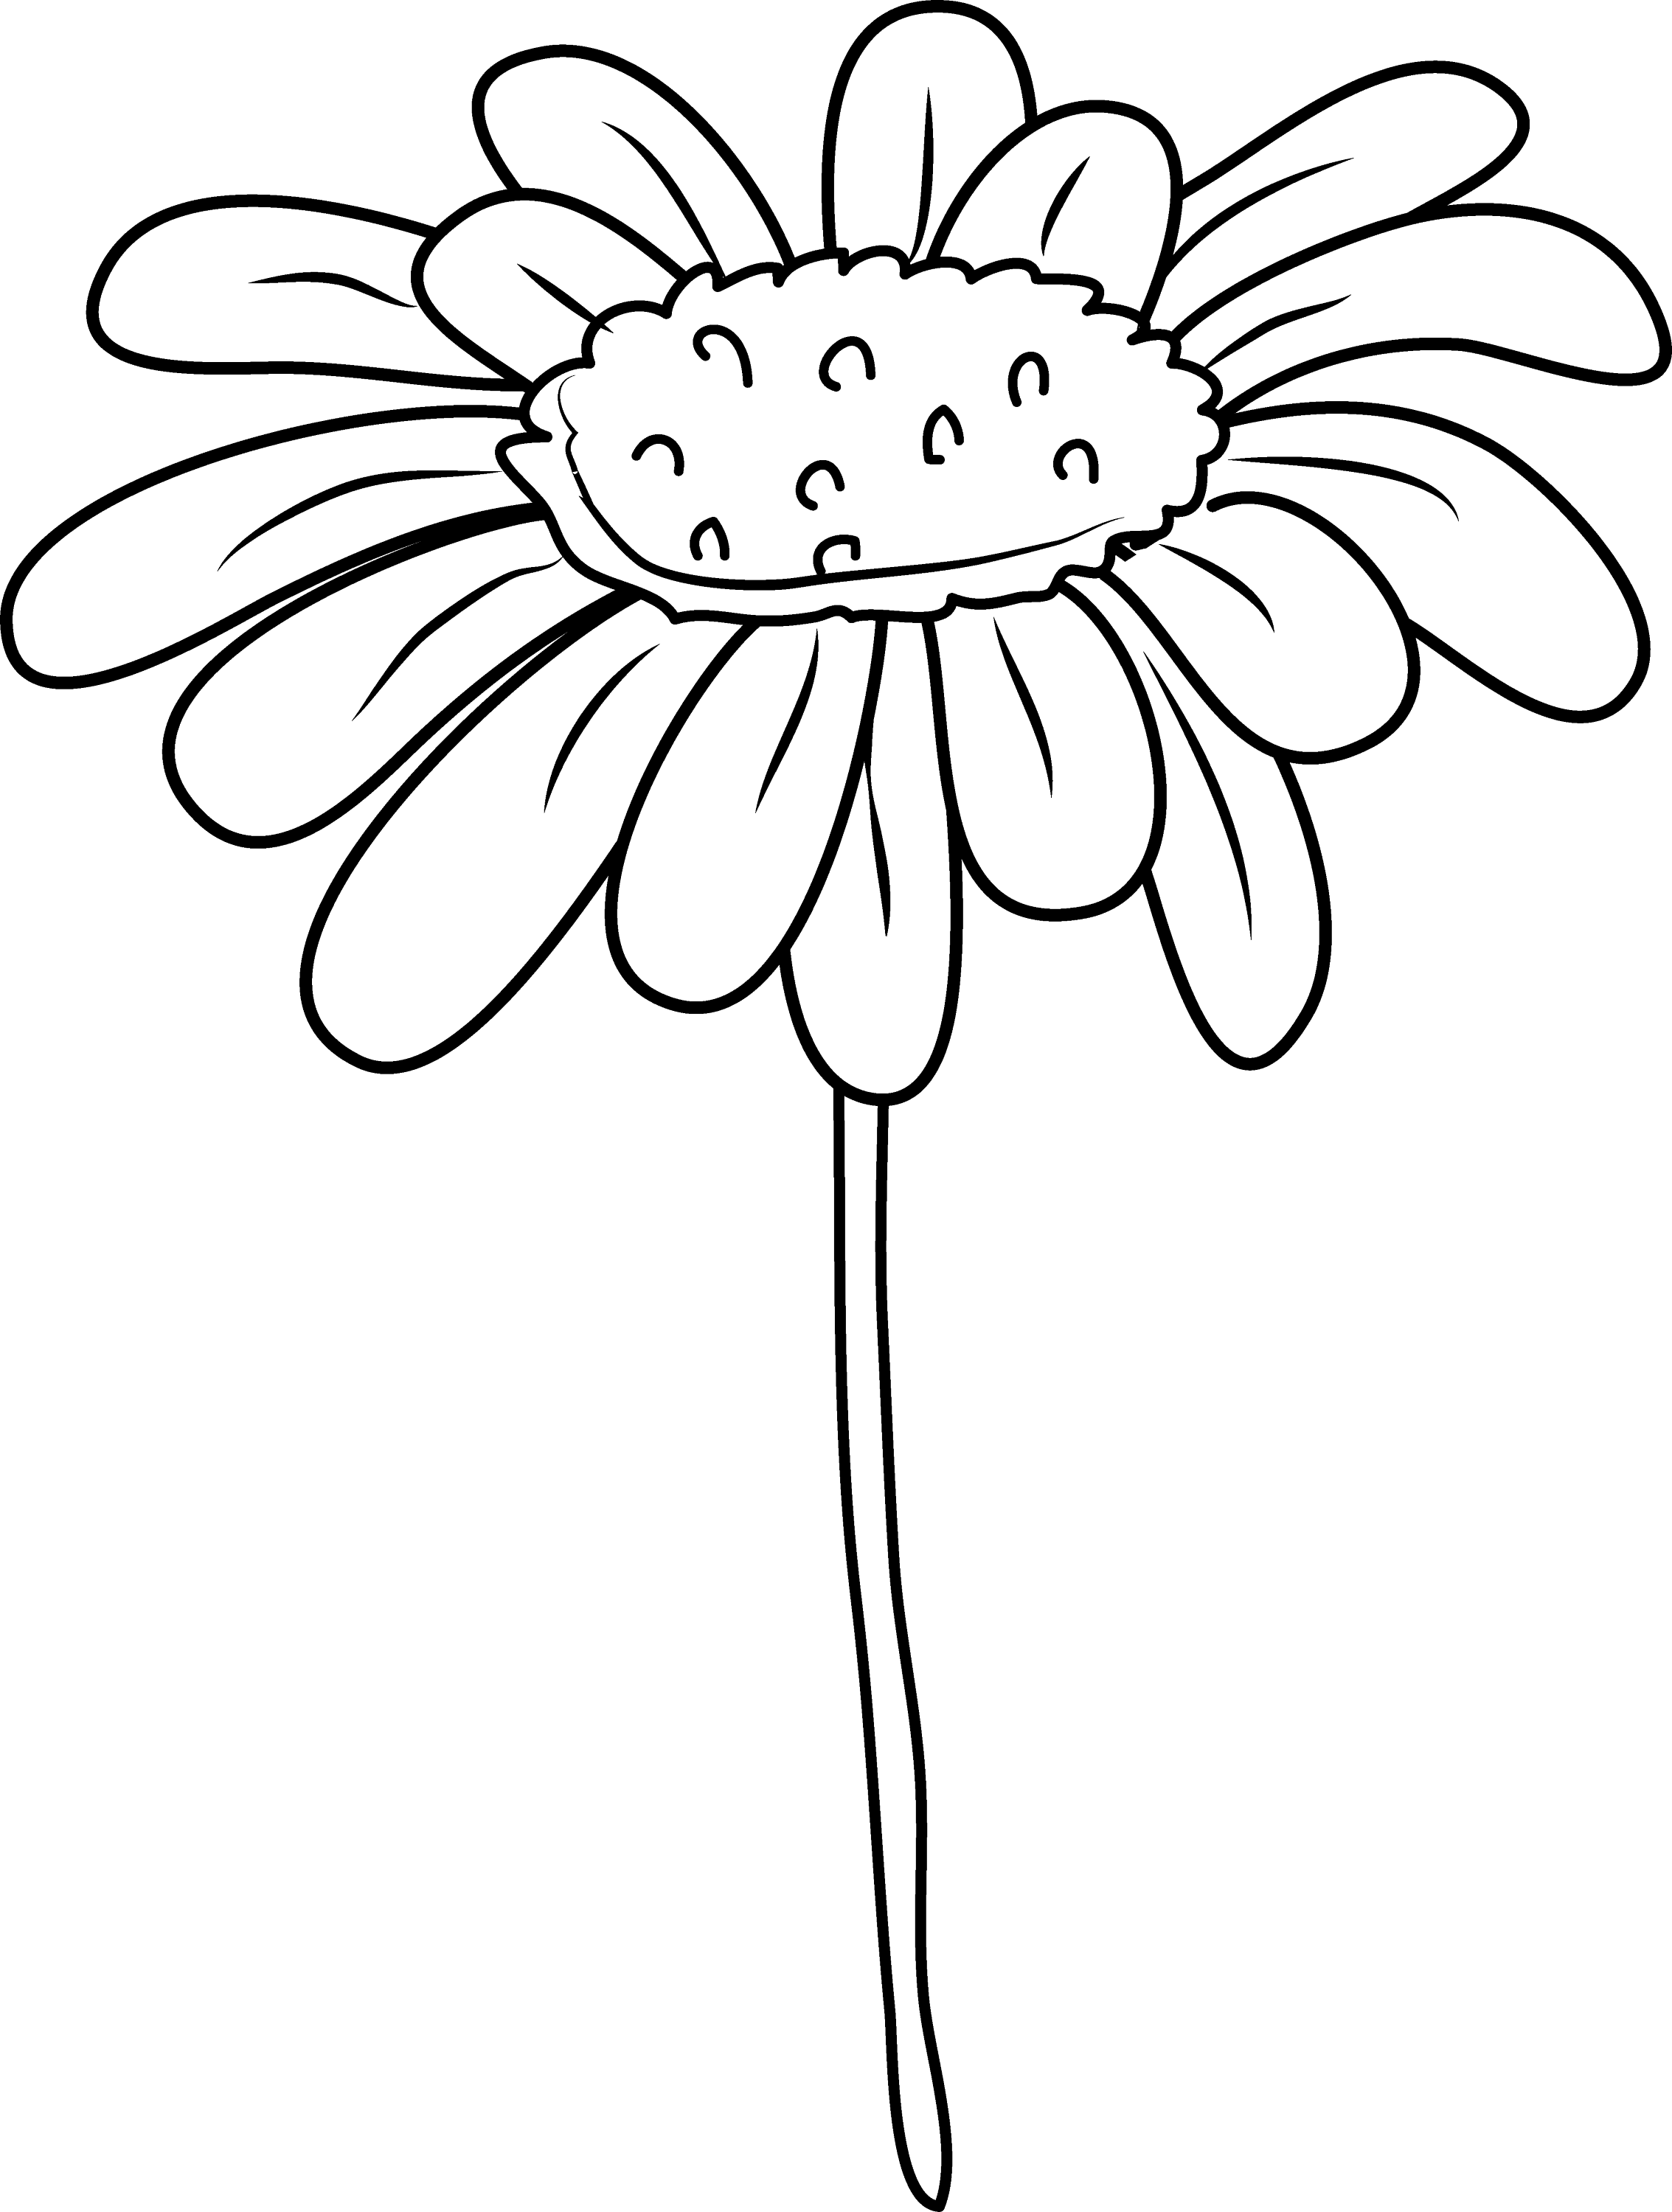 coloring pages daisies and flowers - photo#9